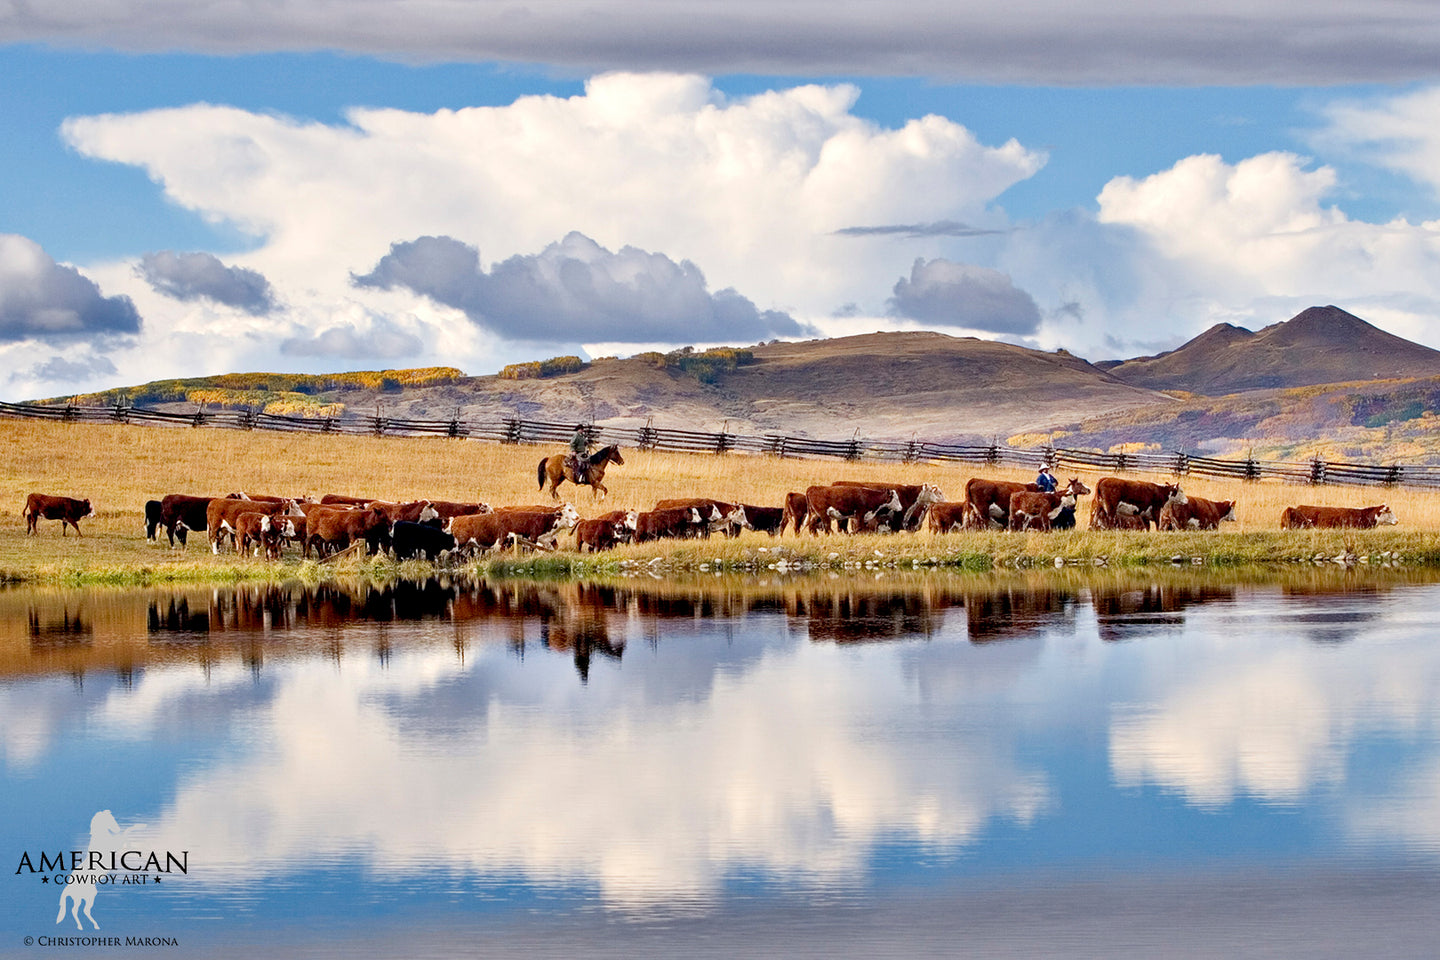 Reflections of a Roundup - American Cowboy Art